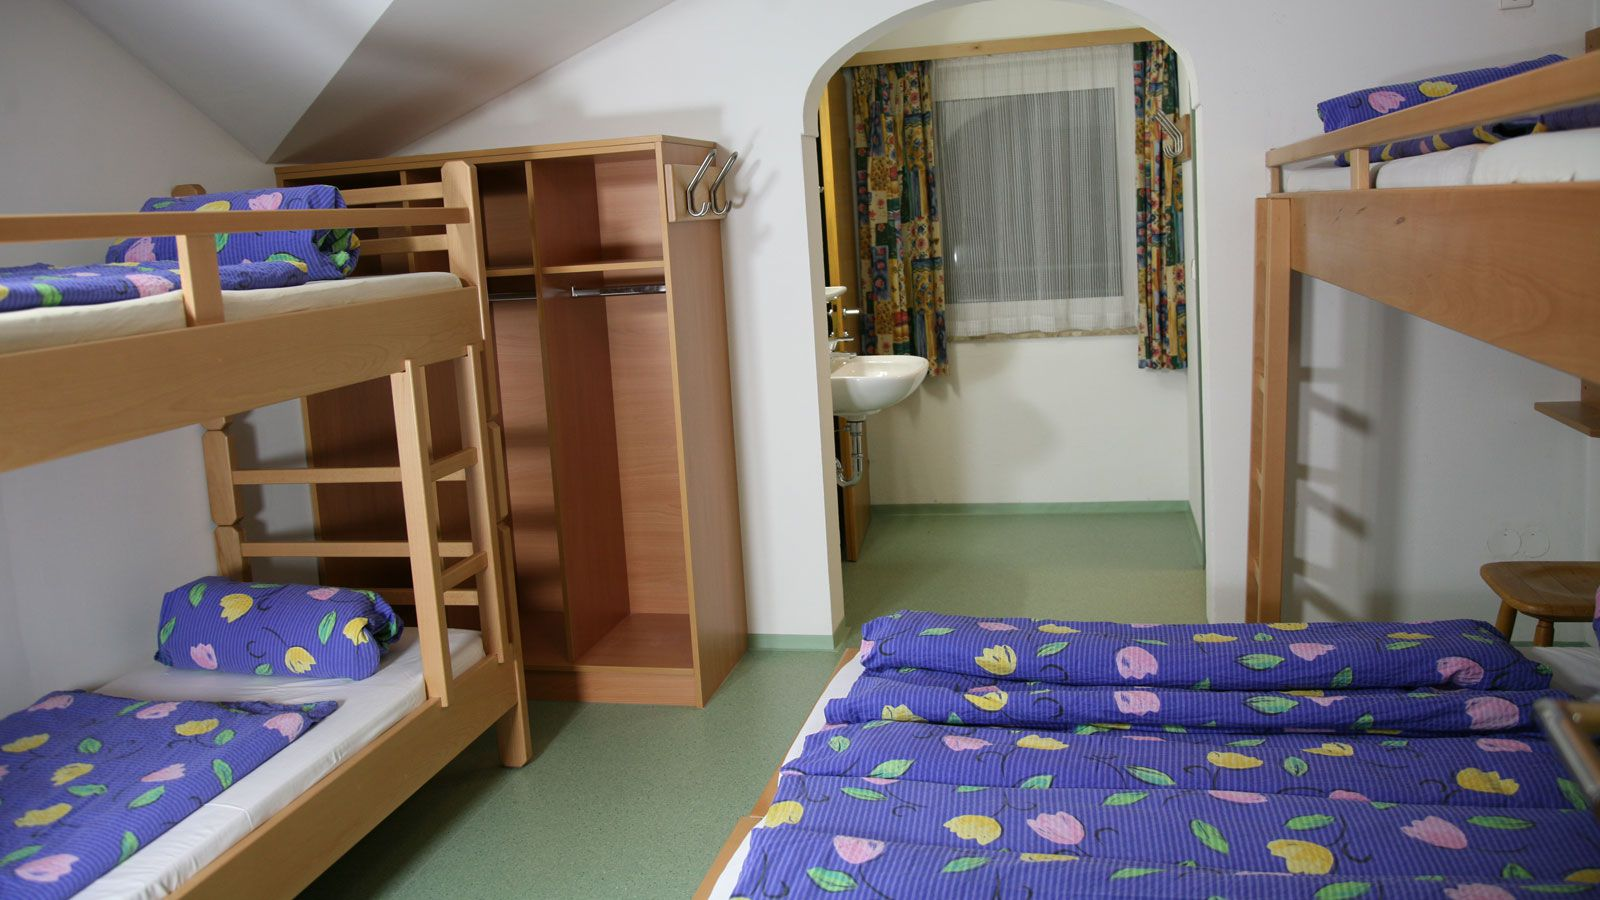 Jugendhotel Wiederkehr School Ski Trip Accommodation